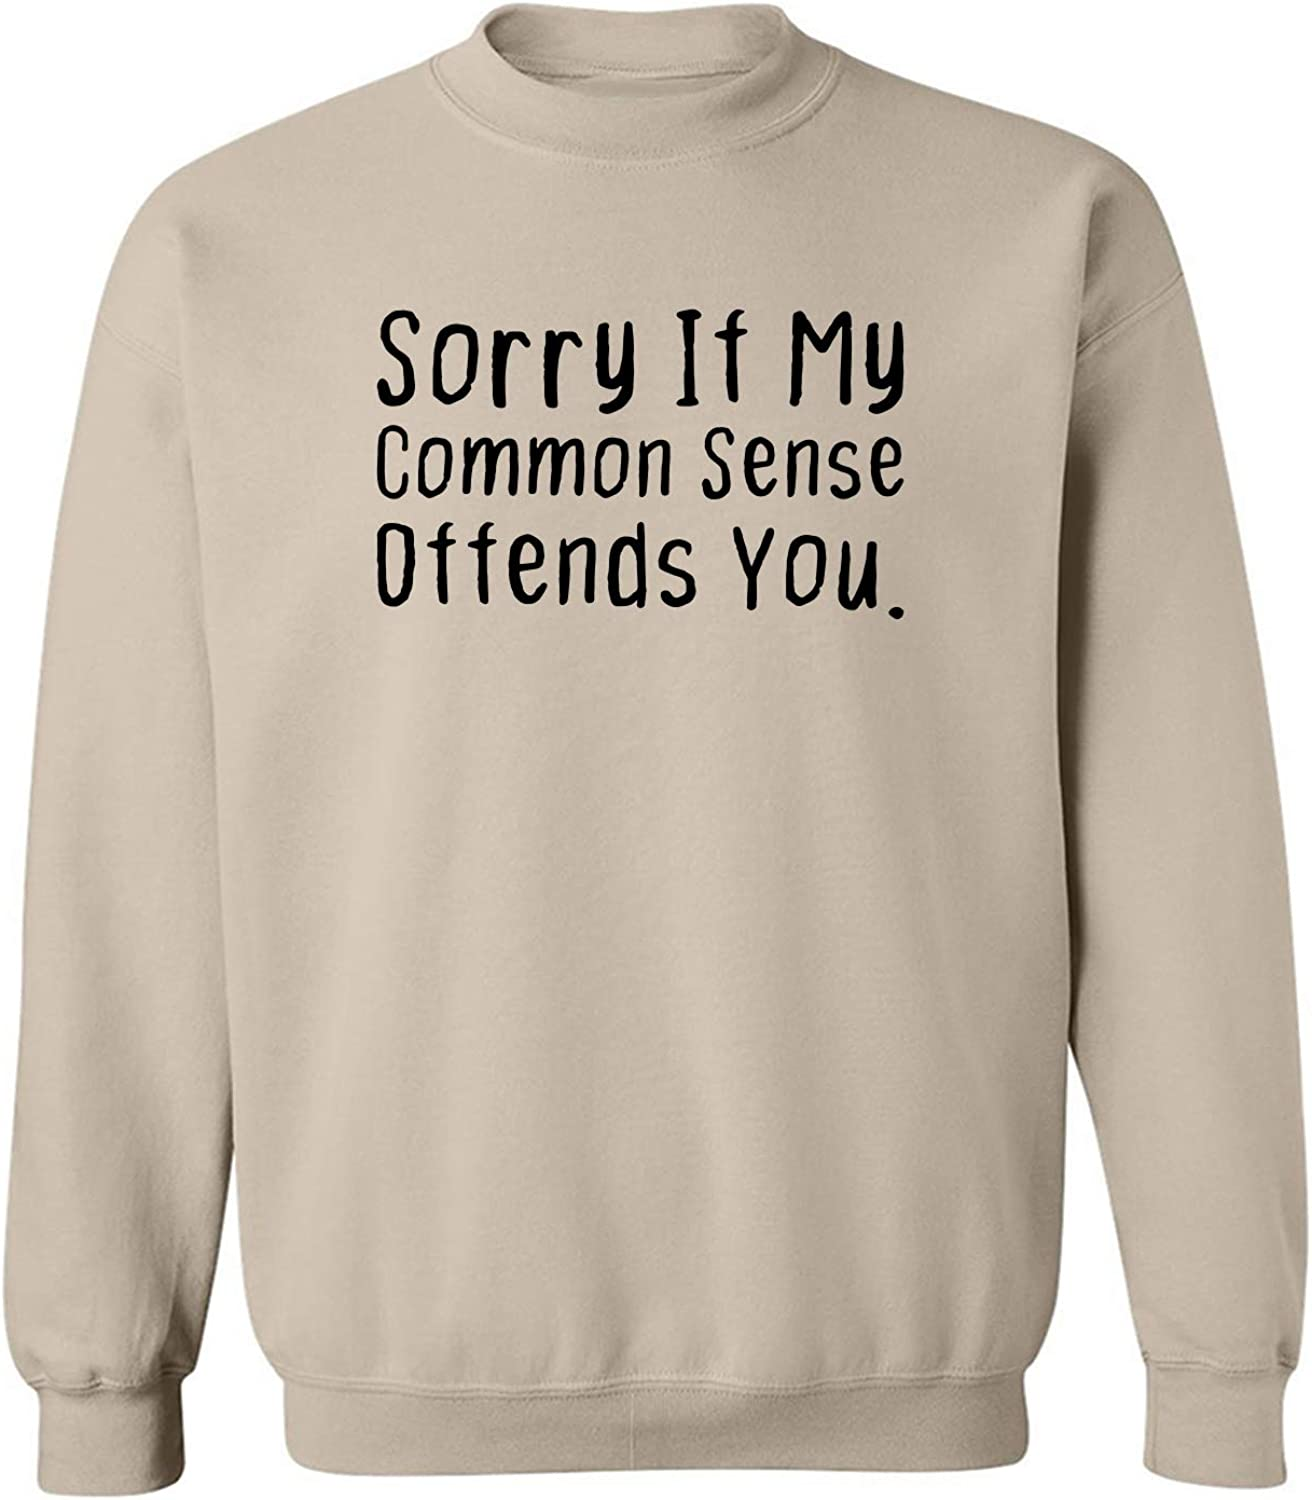 ZeroGravitee Sorry If My Common Sense Offends Crewneck Sweatshirt